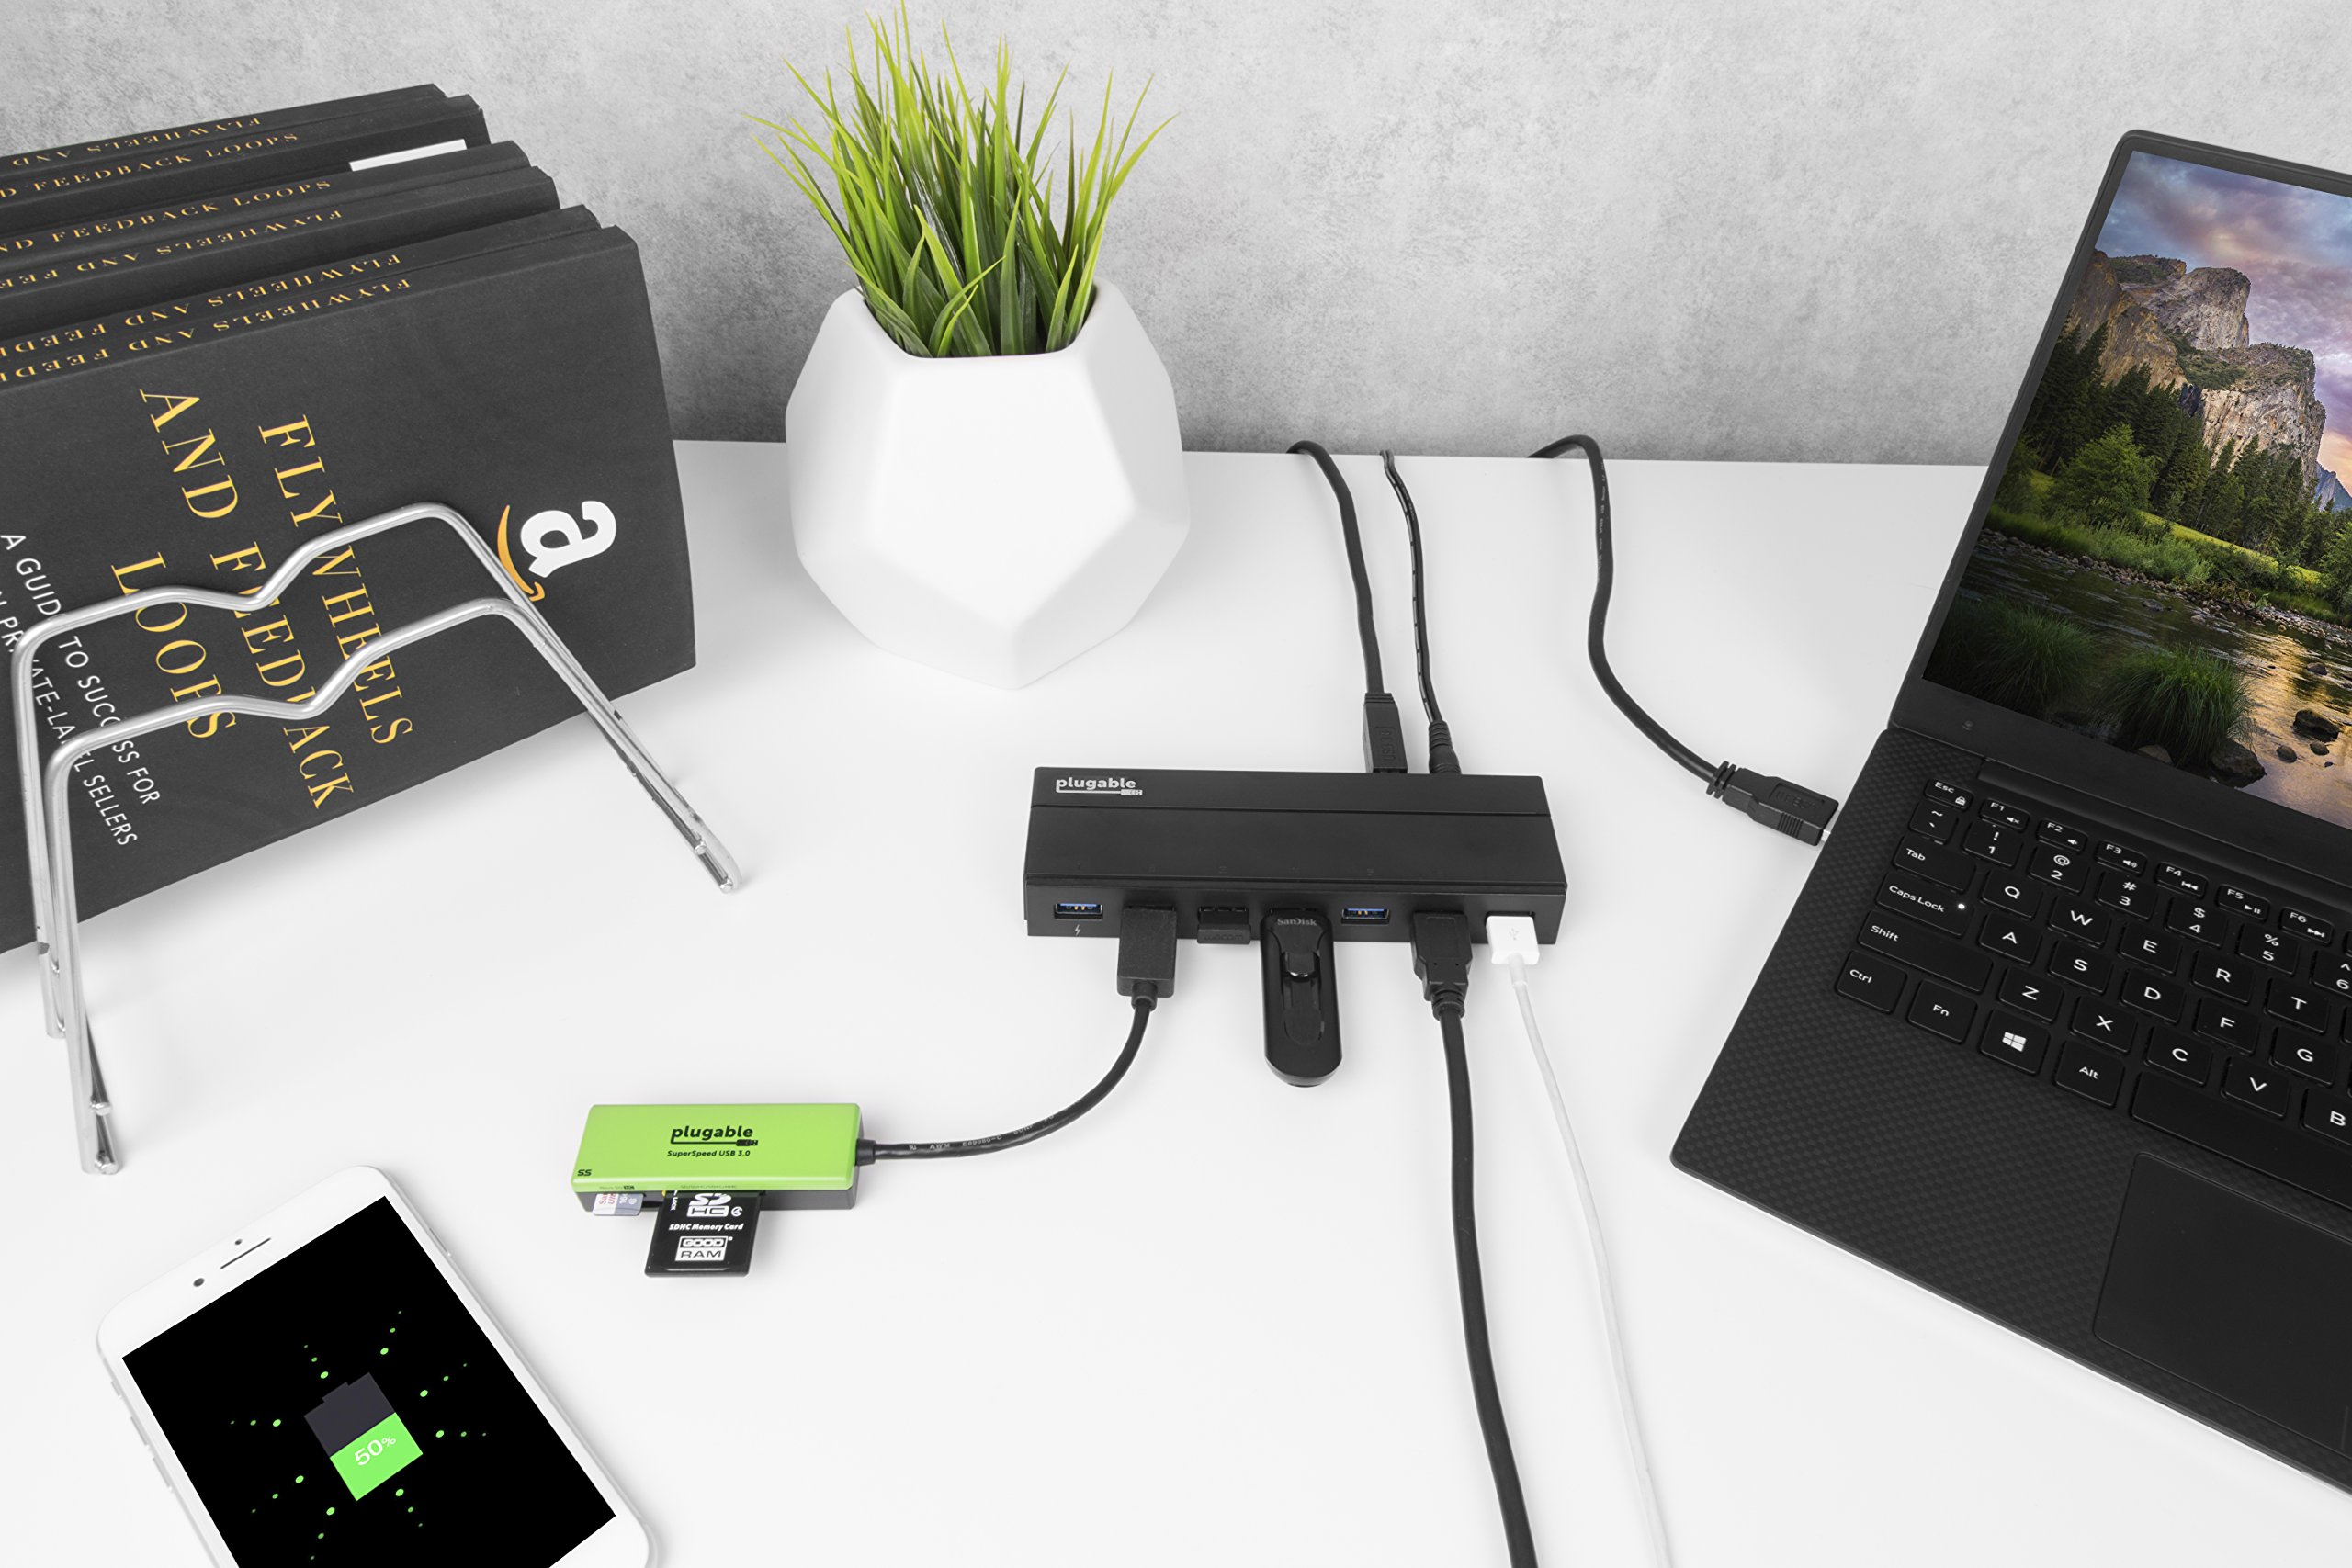 Plugable 7 Port USB 3.0 Hub with 36W Power Adapter by Plugable (Image #2)